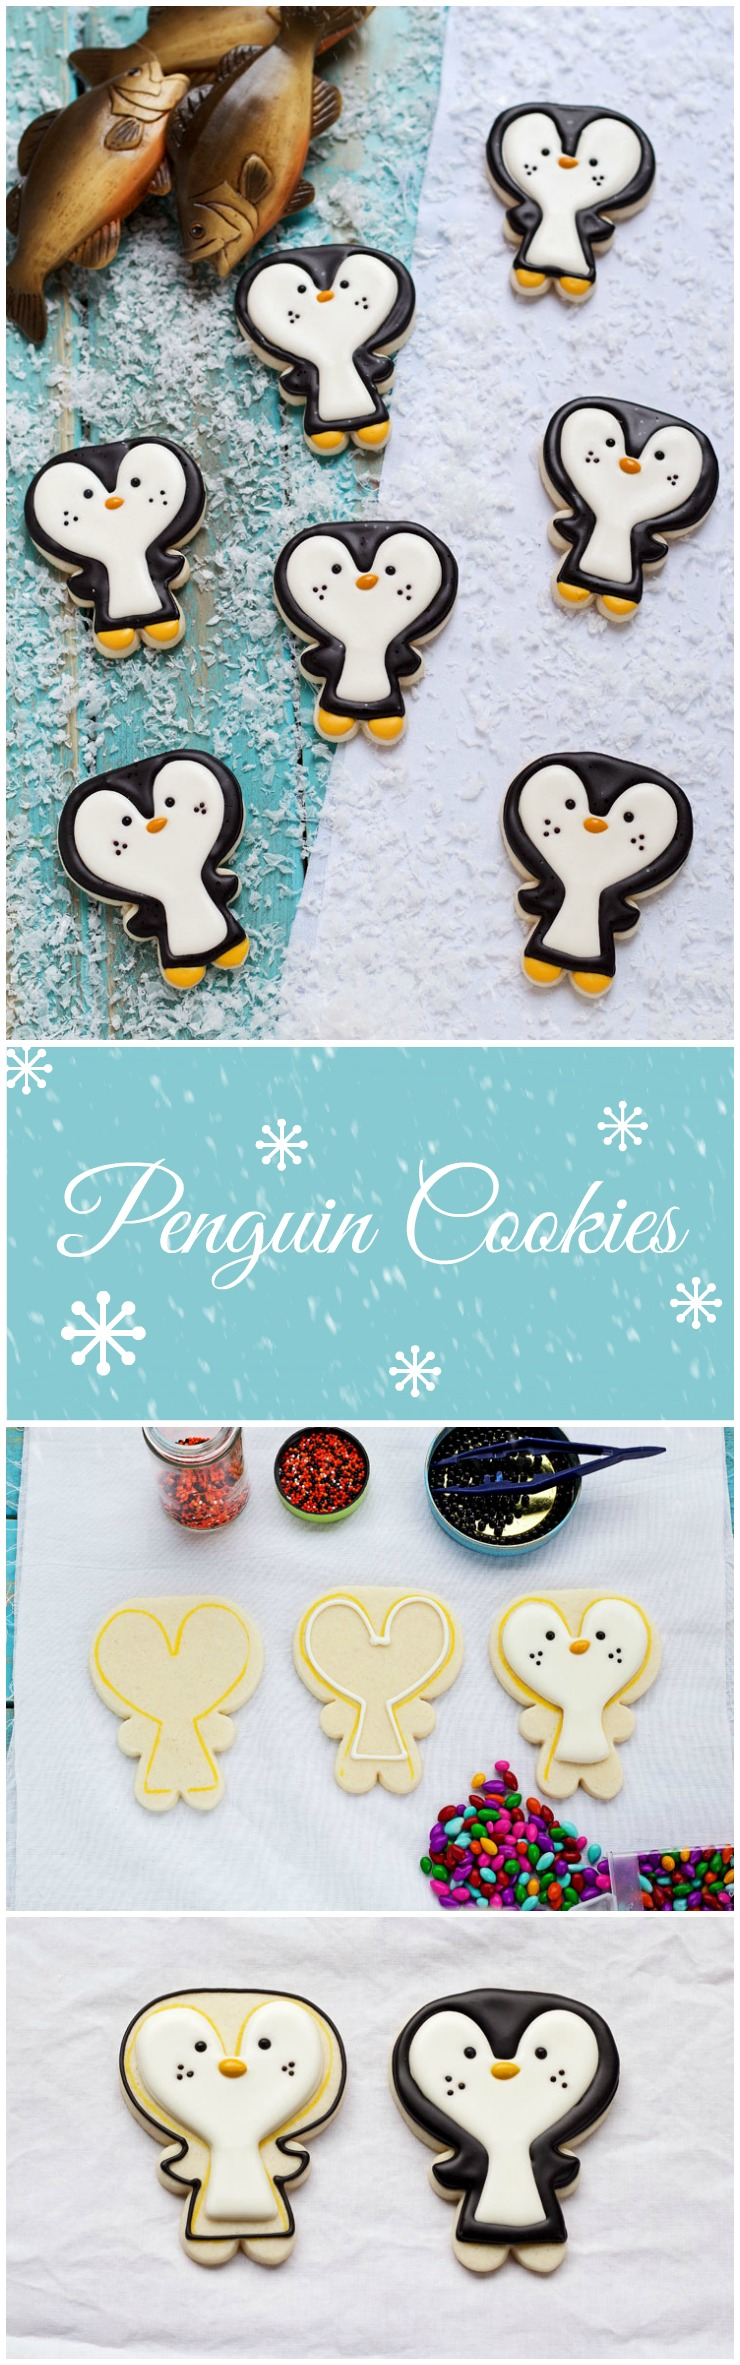 Easy Penguin Cookies | The Bearfoot Baker